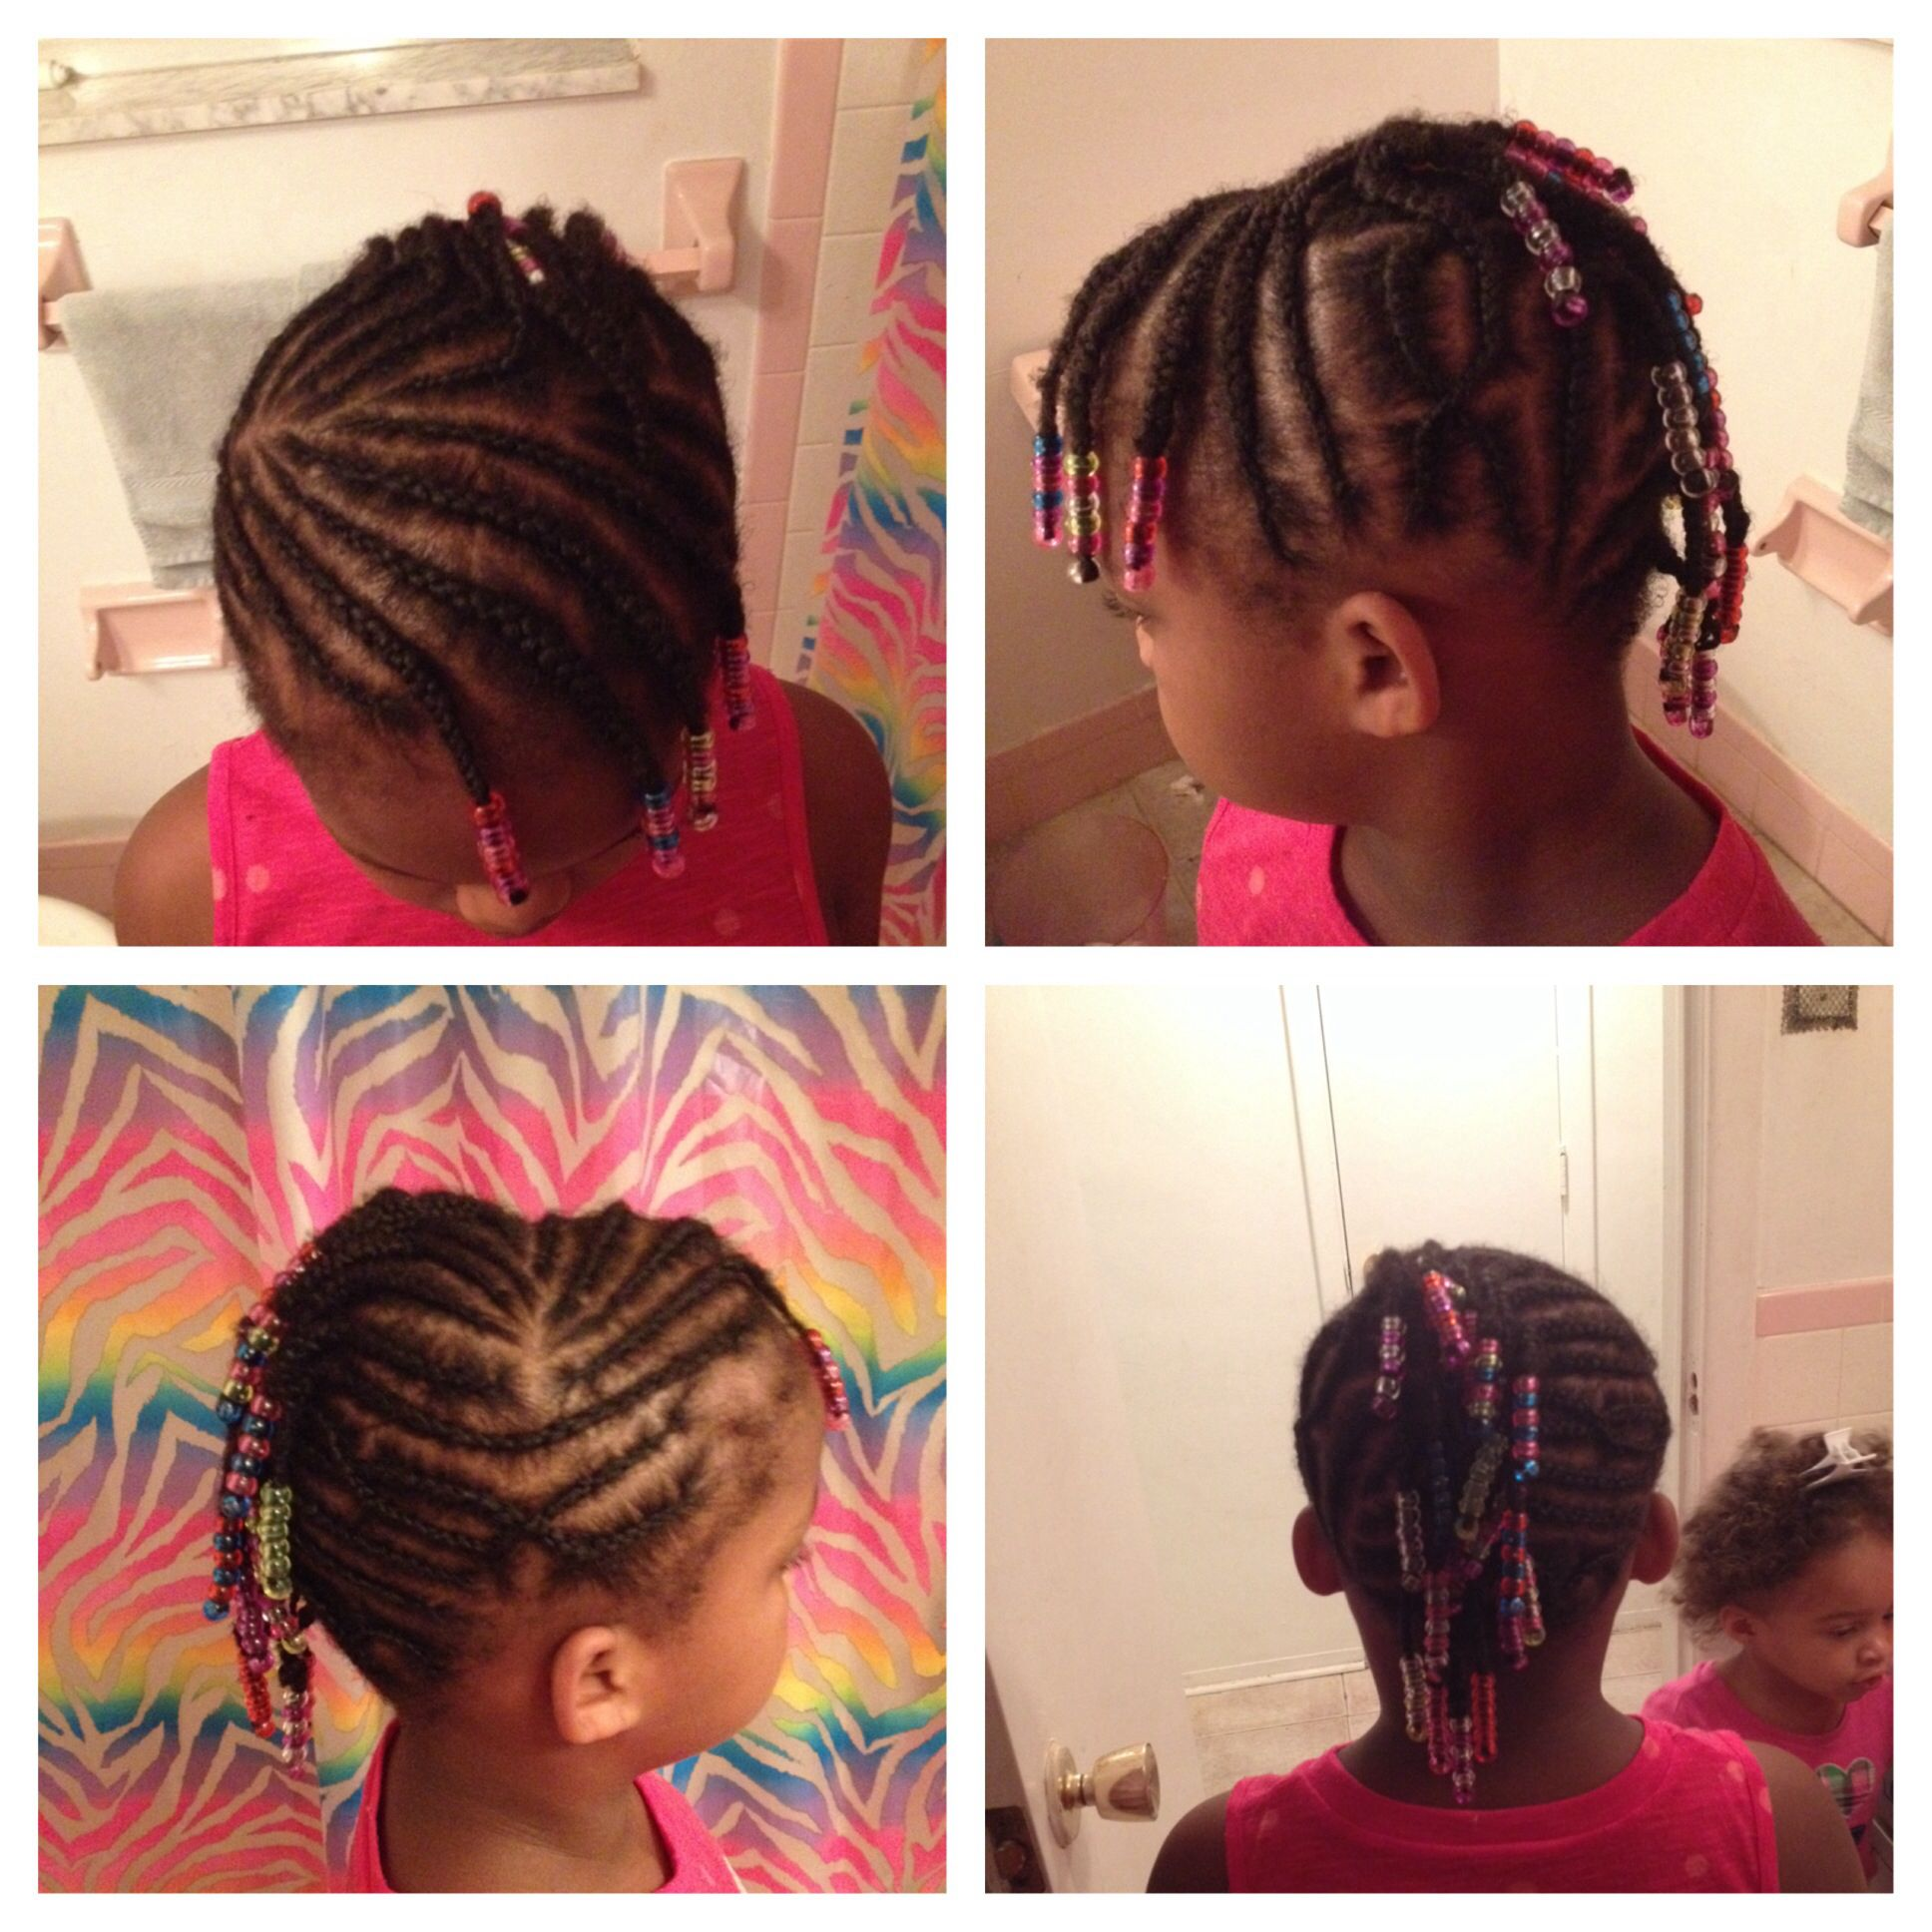 Mohawk with braids and beads for a girl styles for ki pinterest